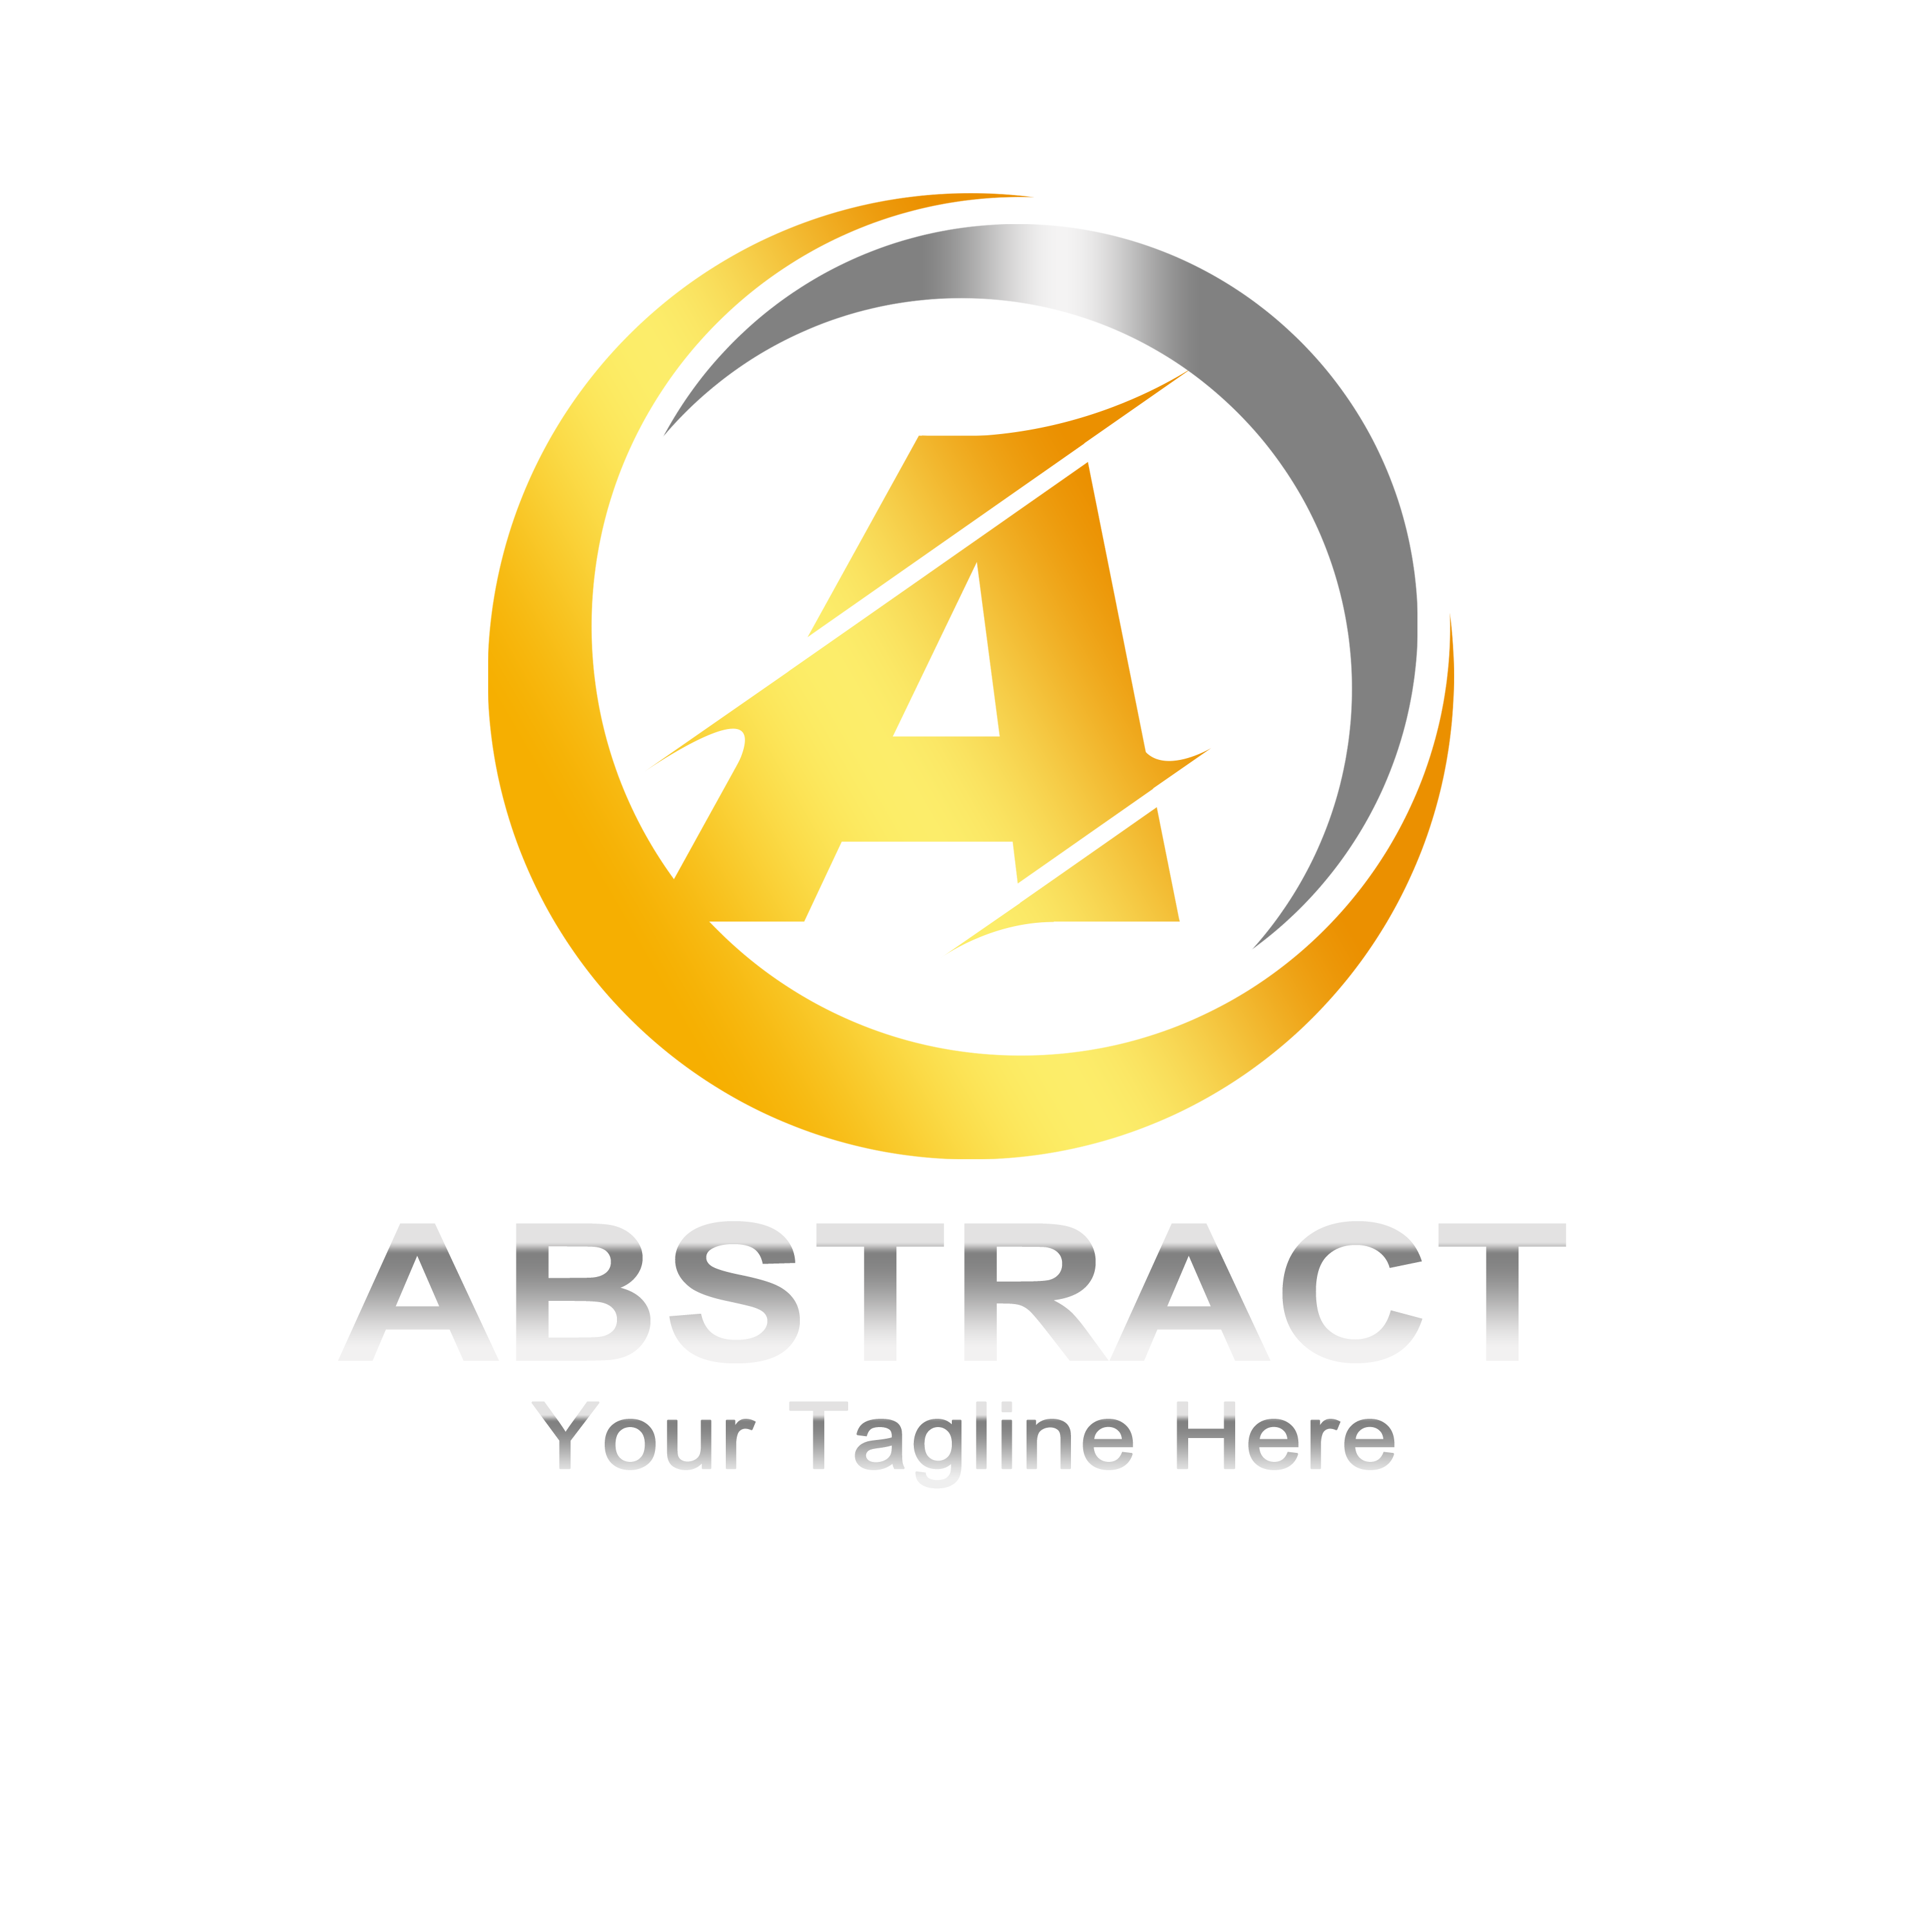 Abstract Letter A Logo Design PNG Transparent